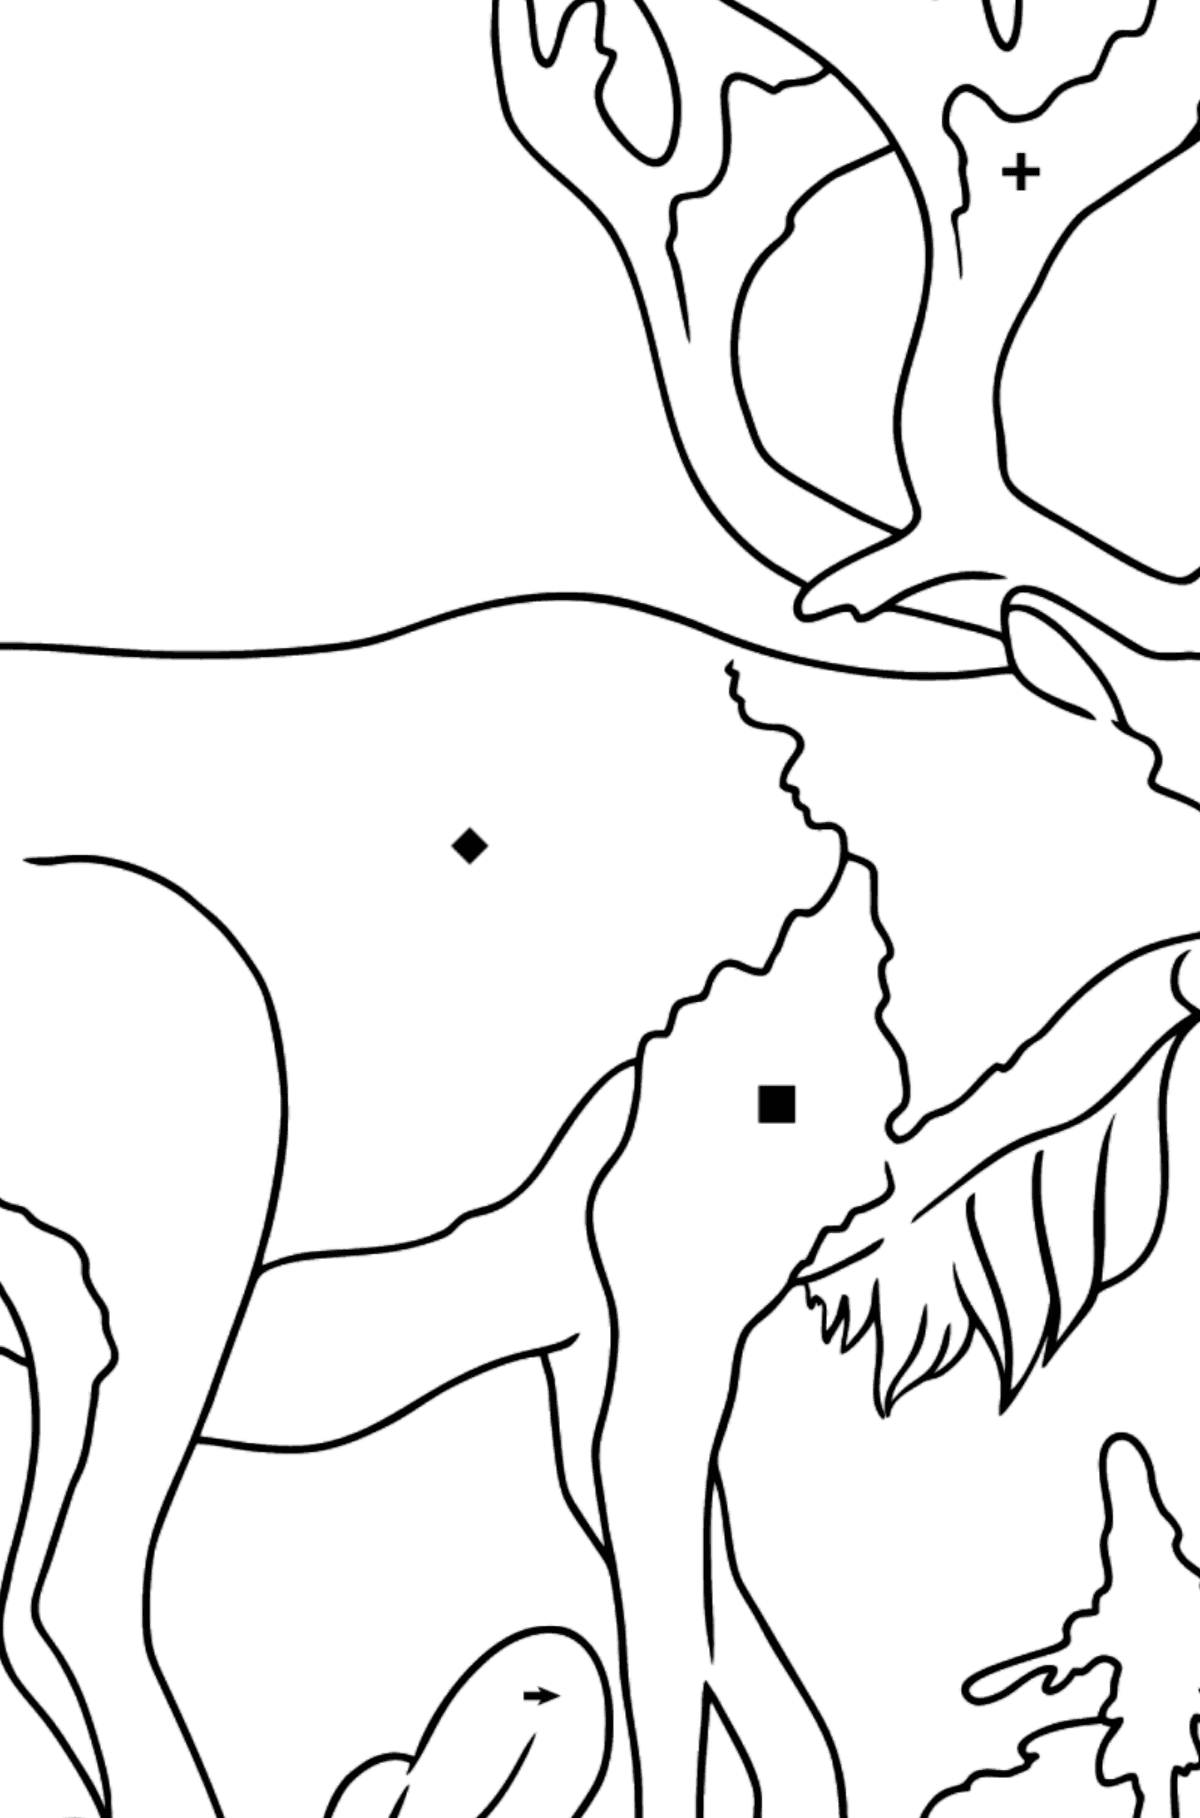 Coloring Page - A Deer with Beautiful Antlers - Coloring by Symbols and Geometric Shapes for Kids